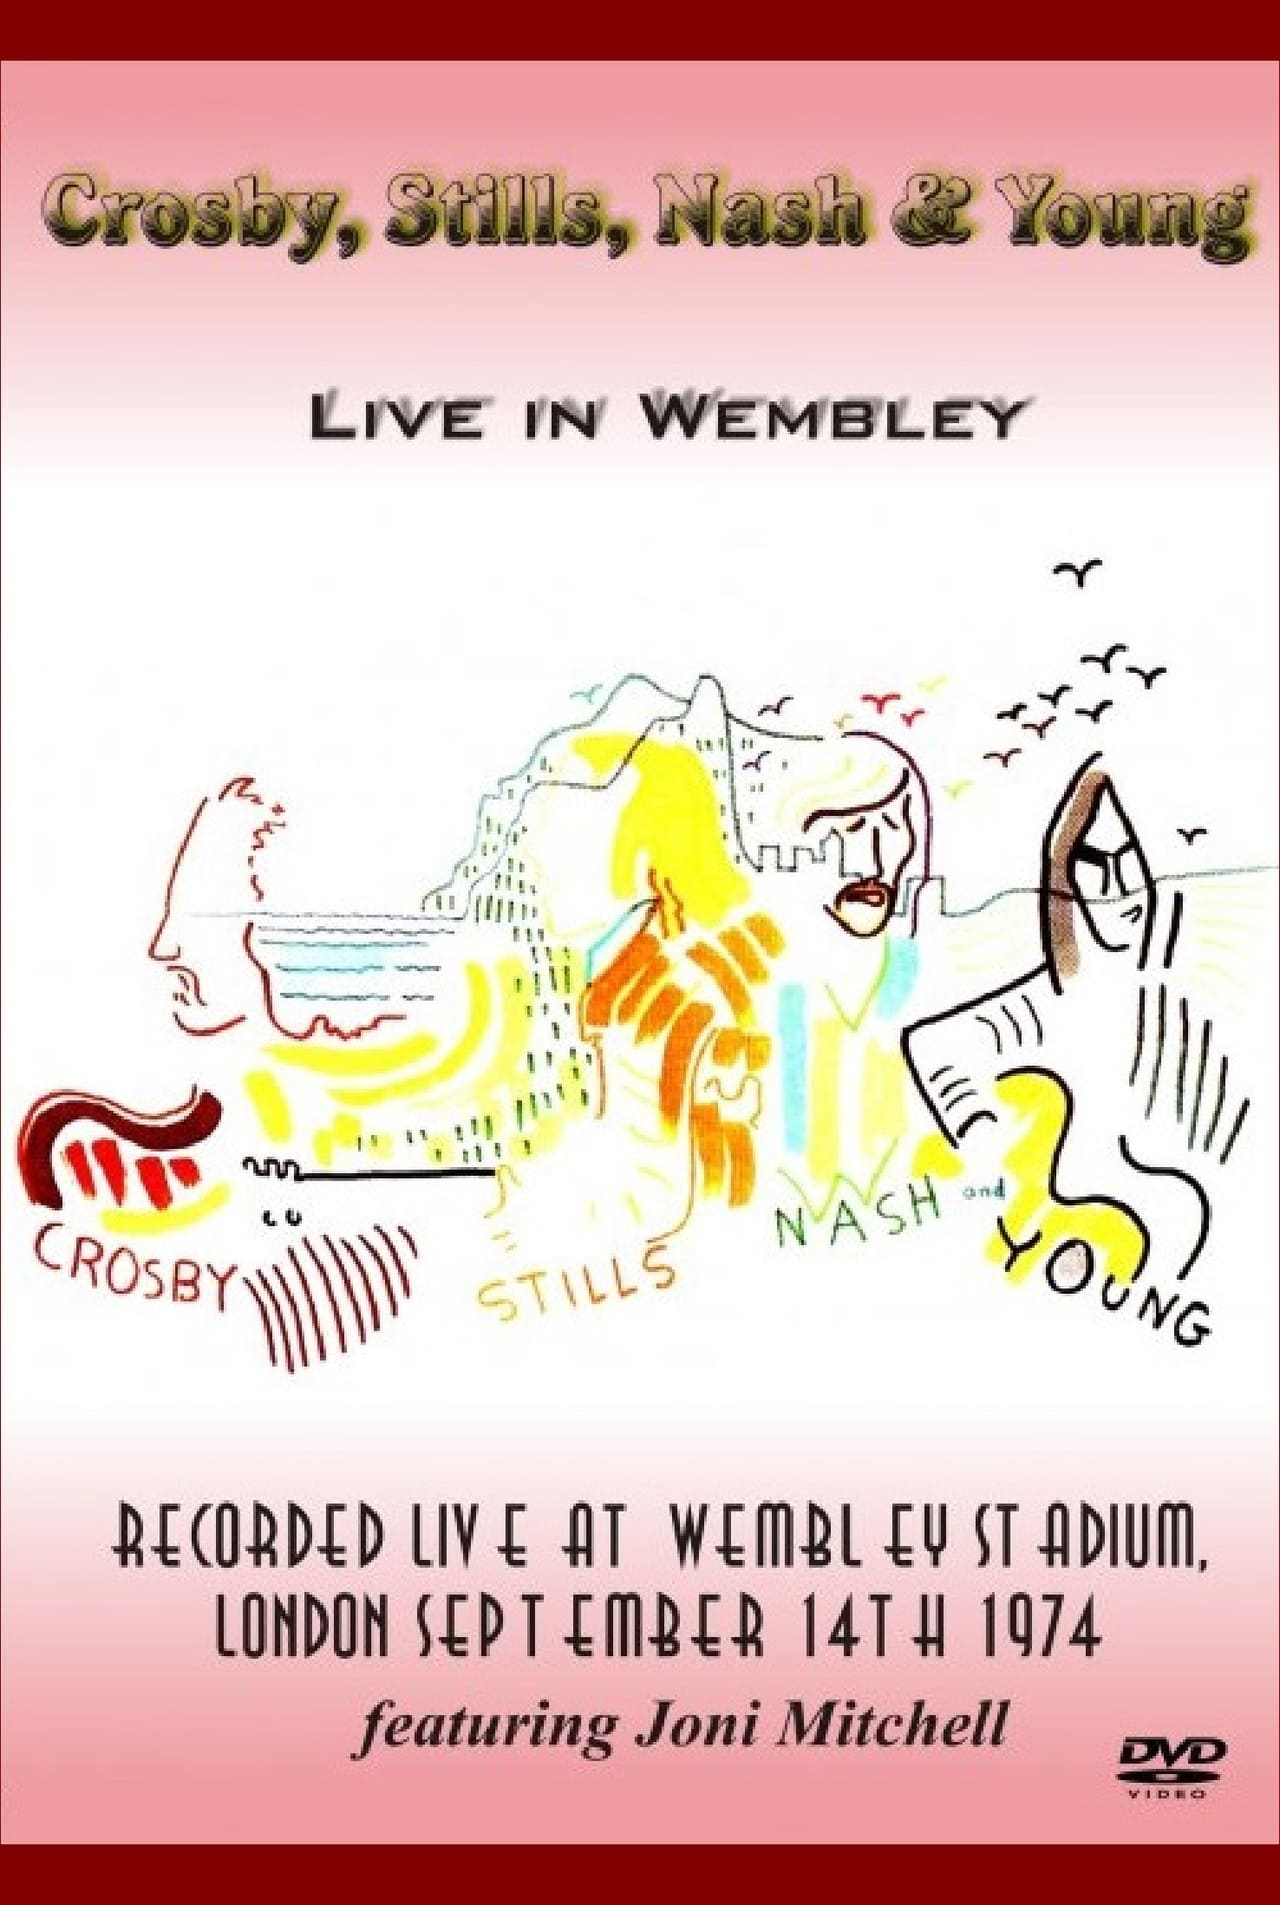 Crosby, Stills, Nash & Young - Live in Wembley 1974